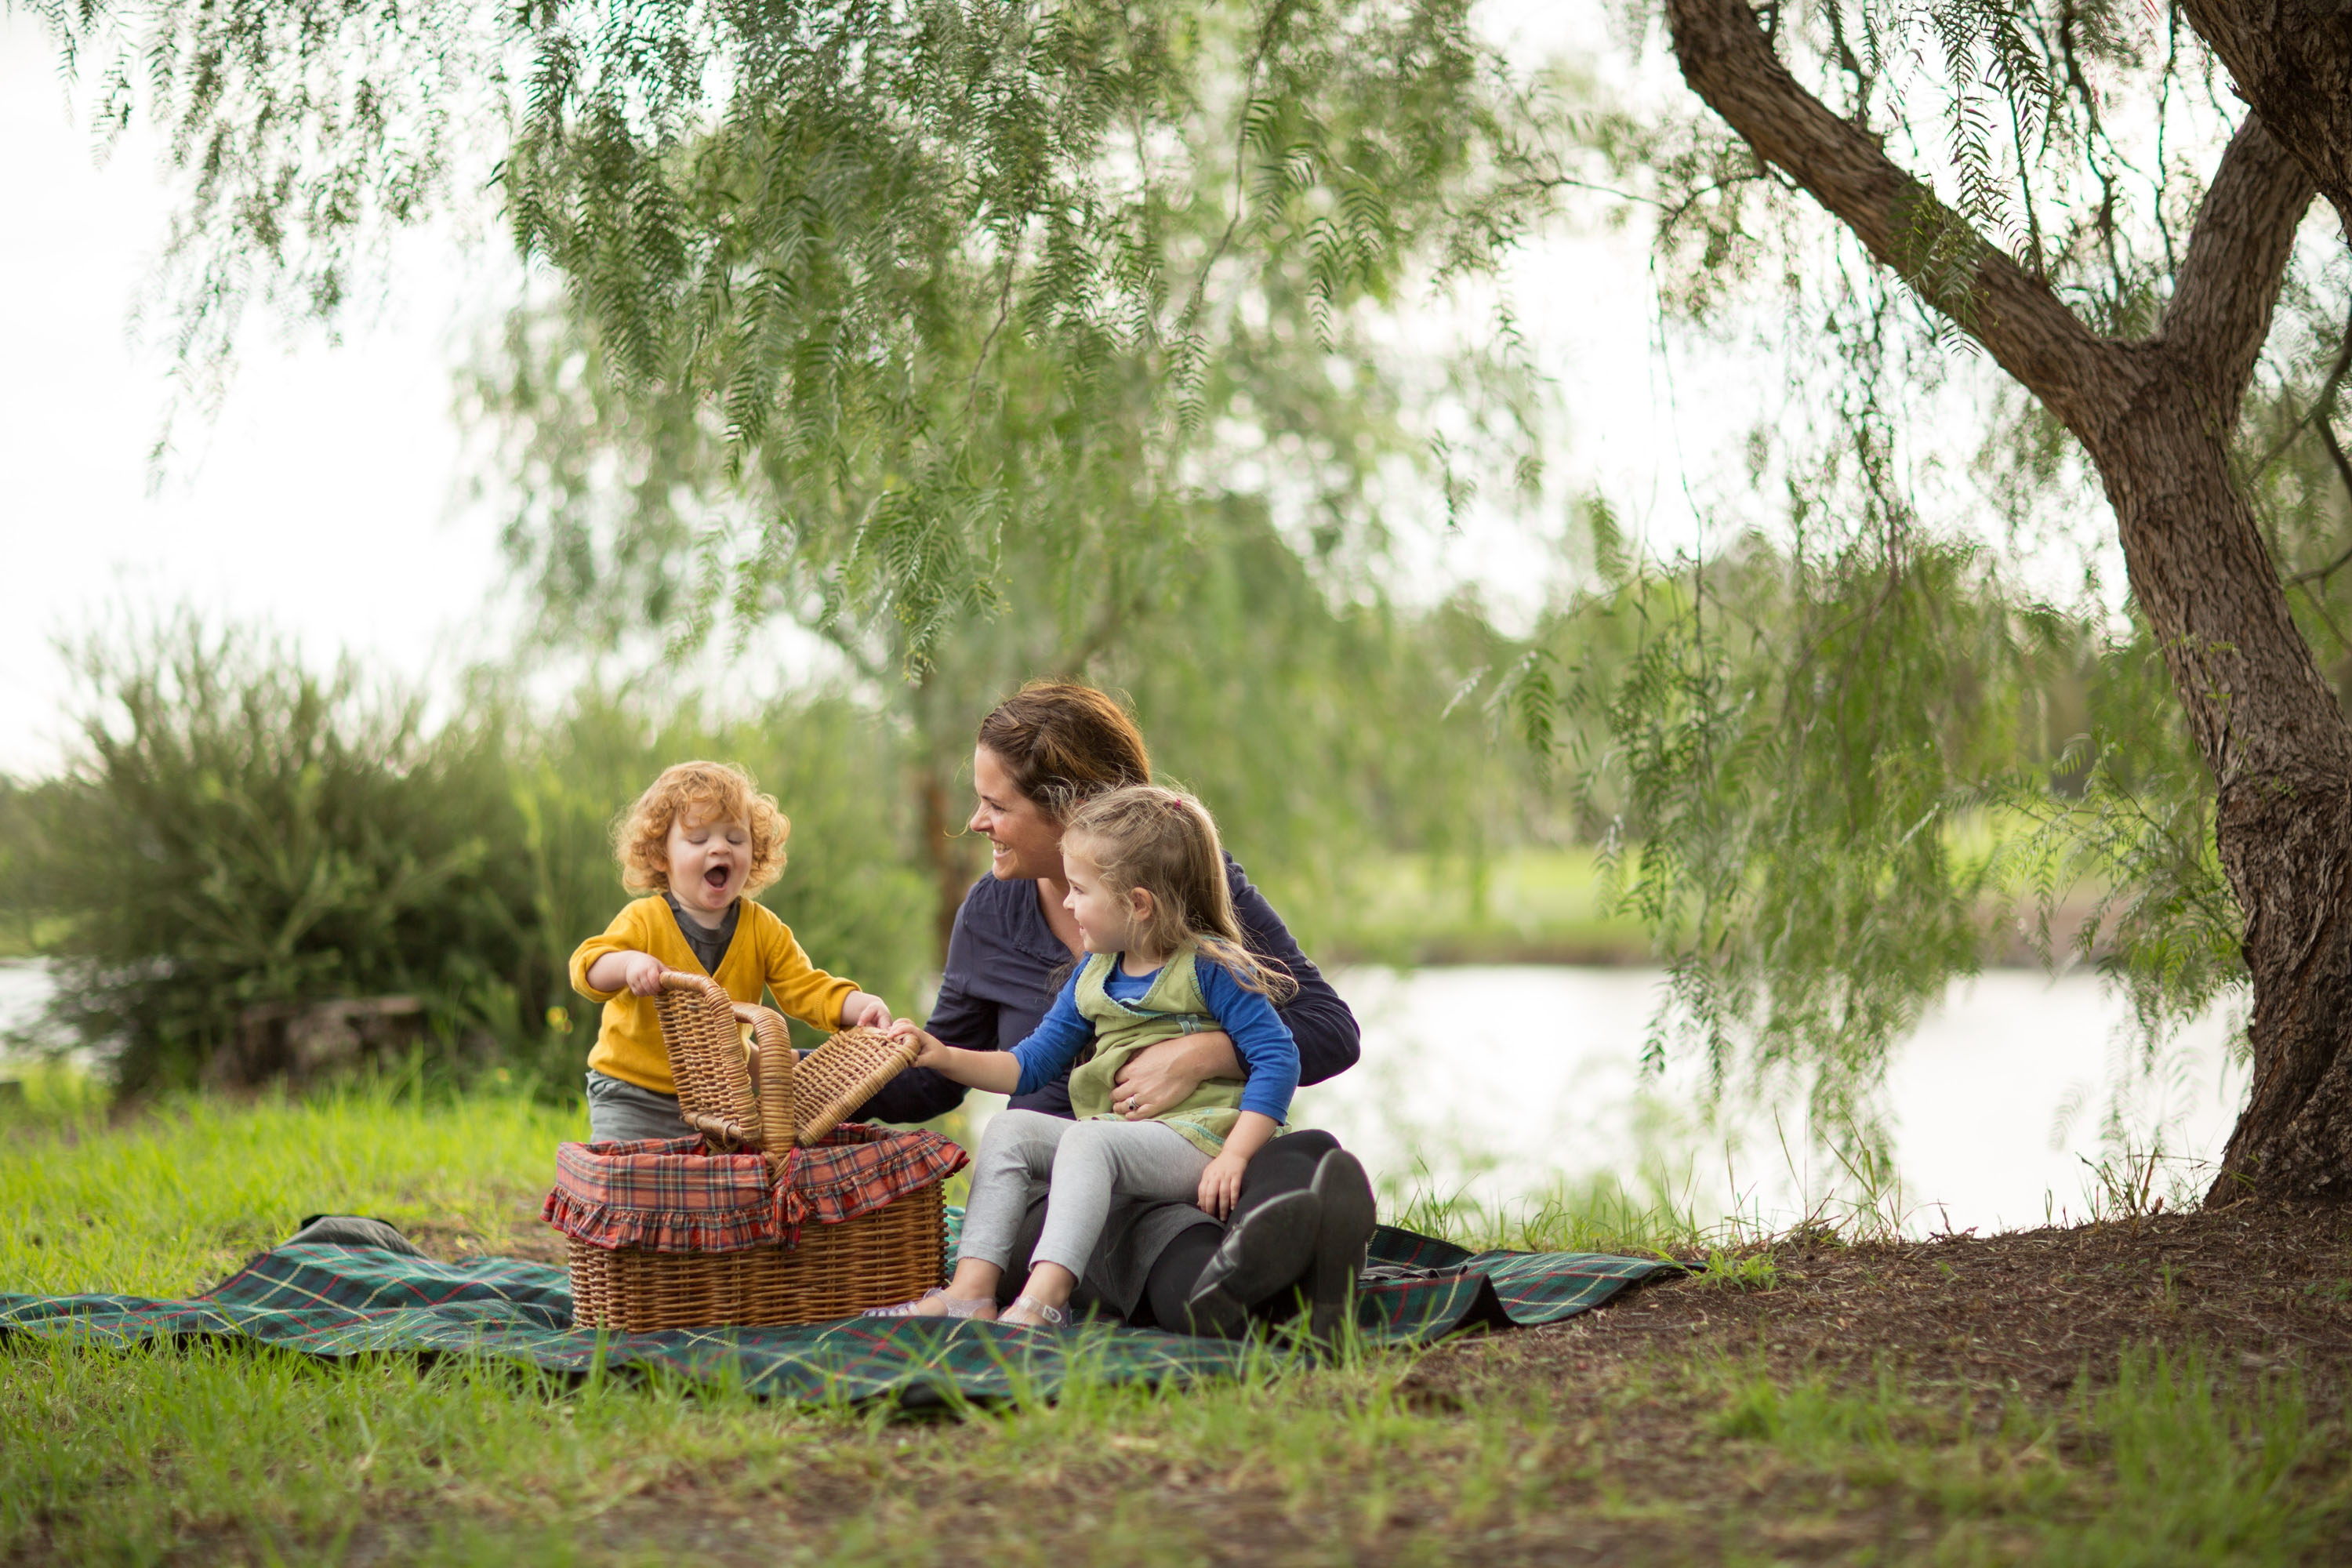 Family picnic at Maribyrnong River, by Chris Kapa. Image courtesy of Melbourne Water